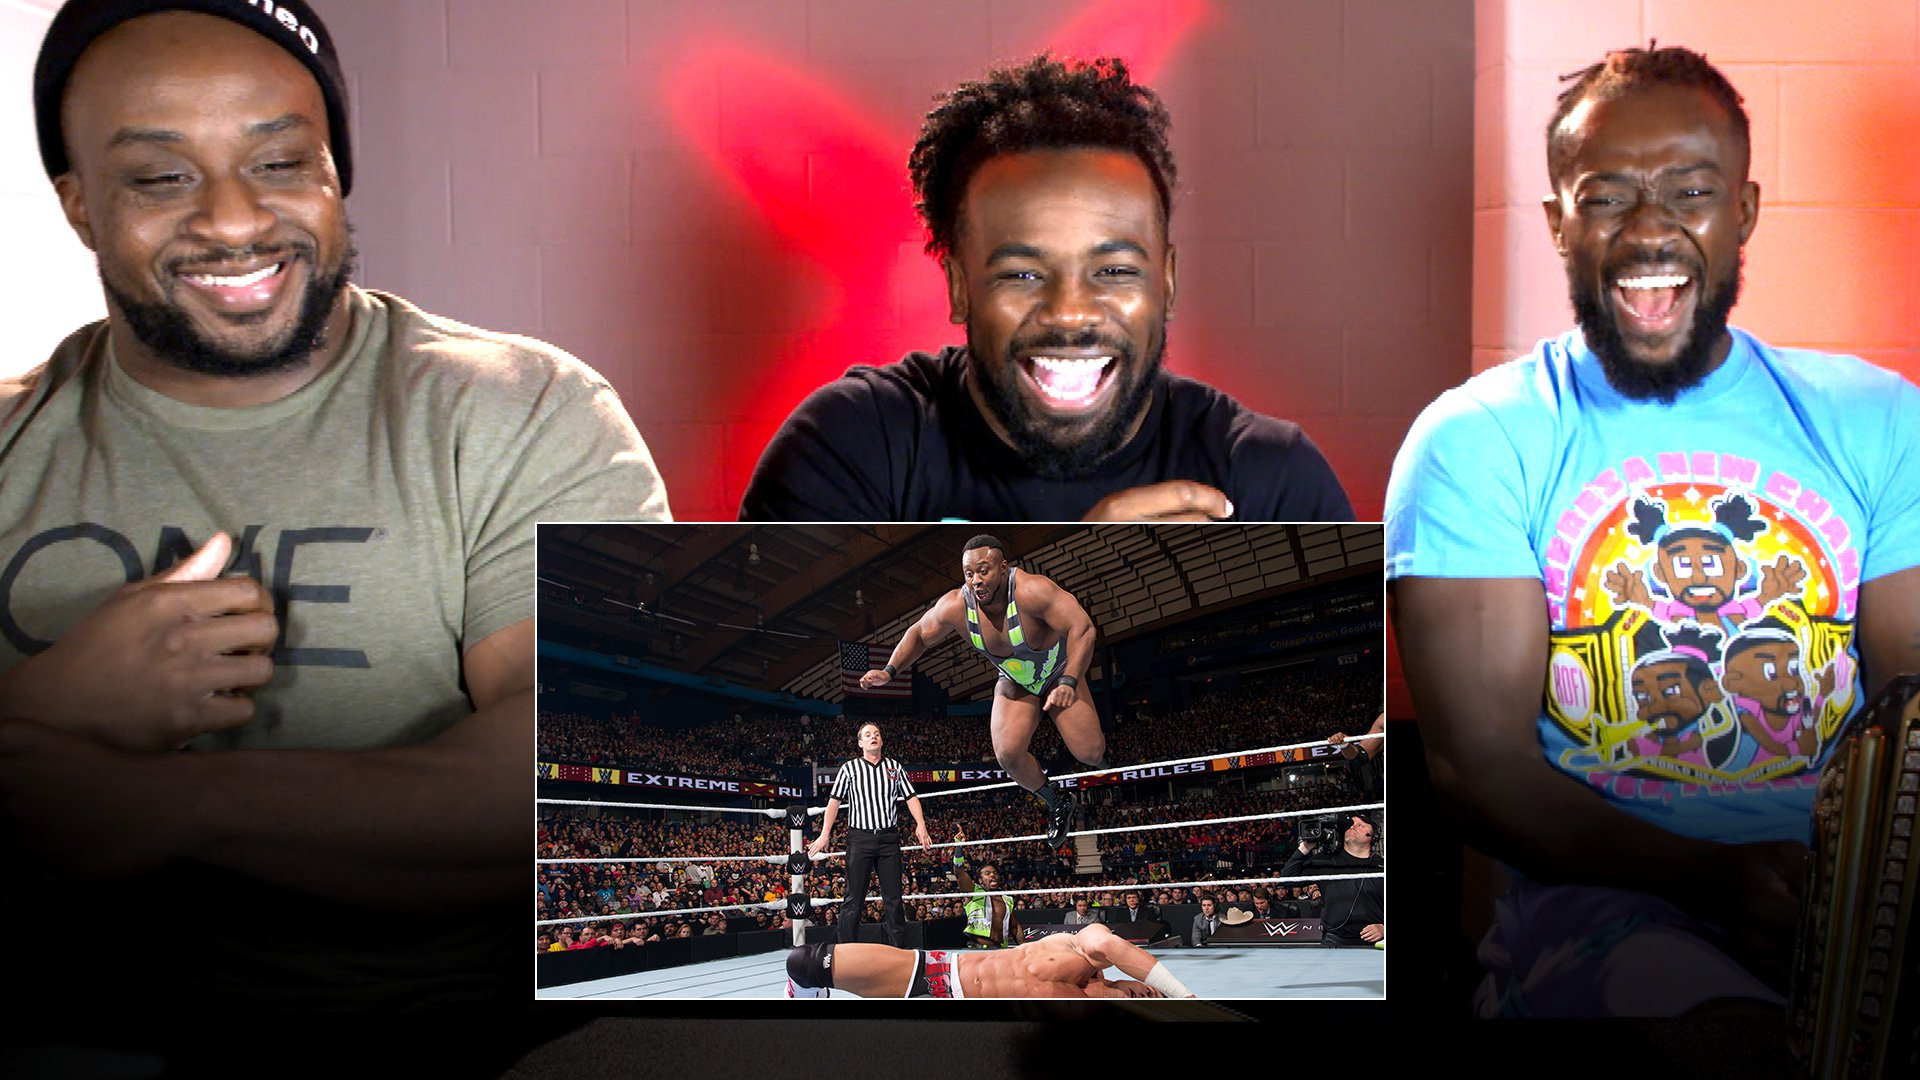 New Day regardent le combat Extreme Rules avec Kidd & Cesaro: WWE Playback